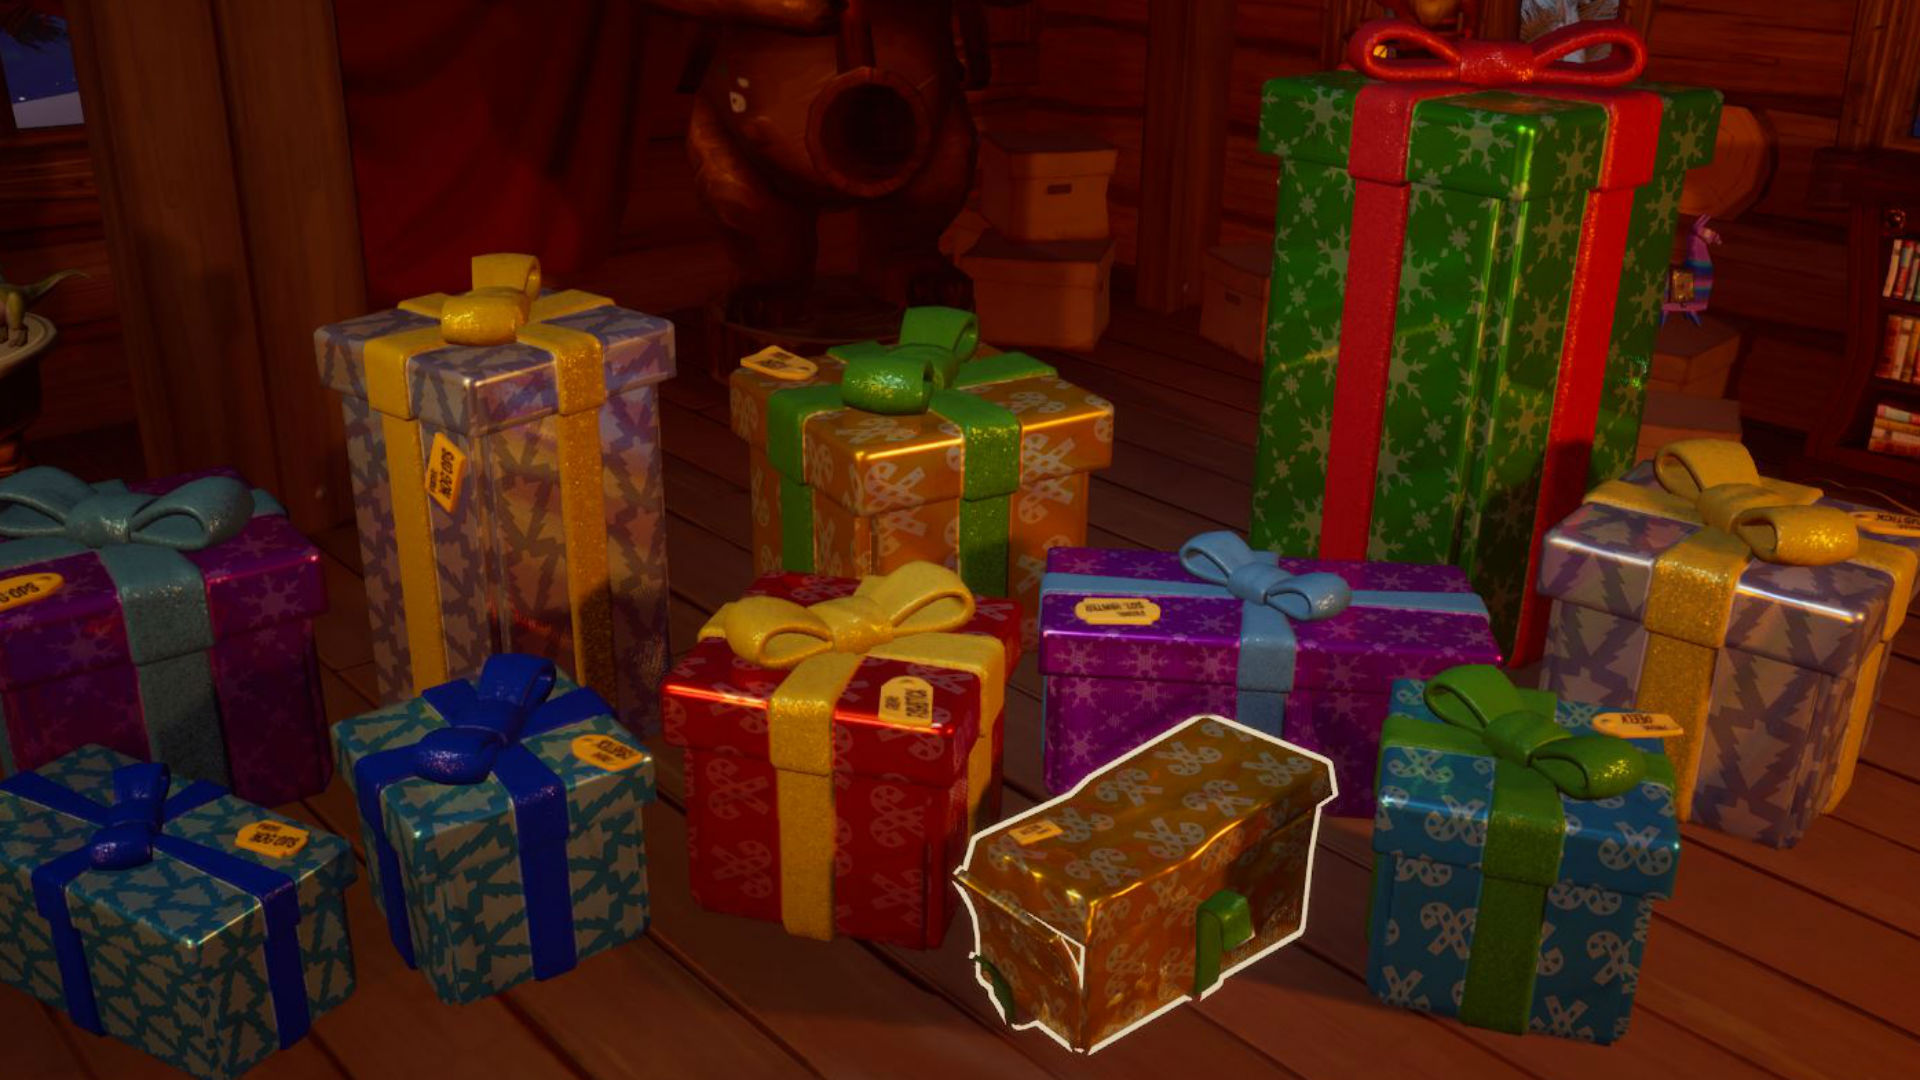 Fortnite Presents All The Fortnite Christmas Presents Rewards In Winterfest Pc Gamer The 14 days of christmas event in fortnite was extended today, with epic announcing that players have until january 15, 12am pst/3am est/8am gmt/9am cet to collect. all the fortnite christmas presents